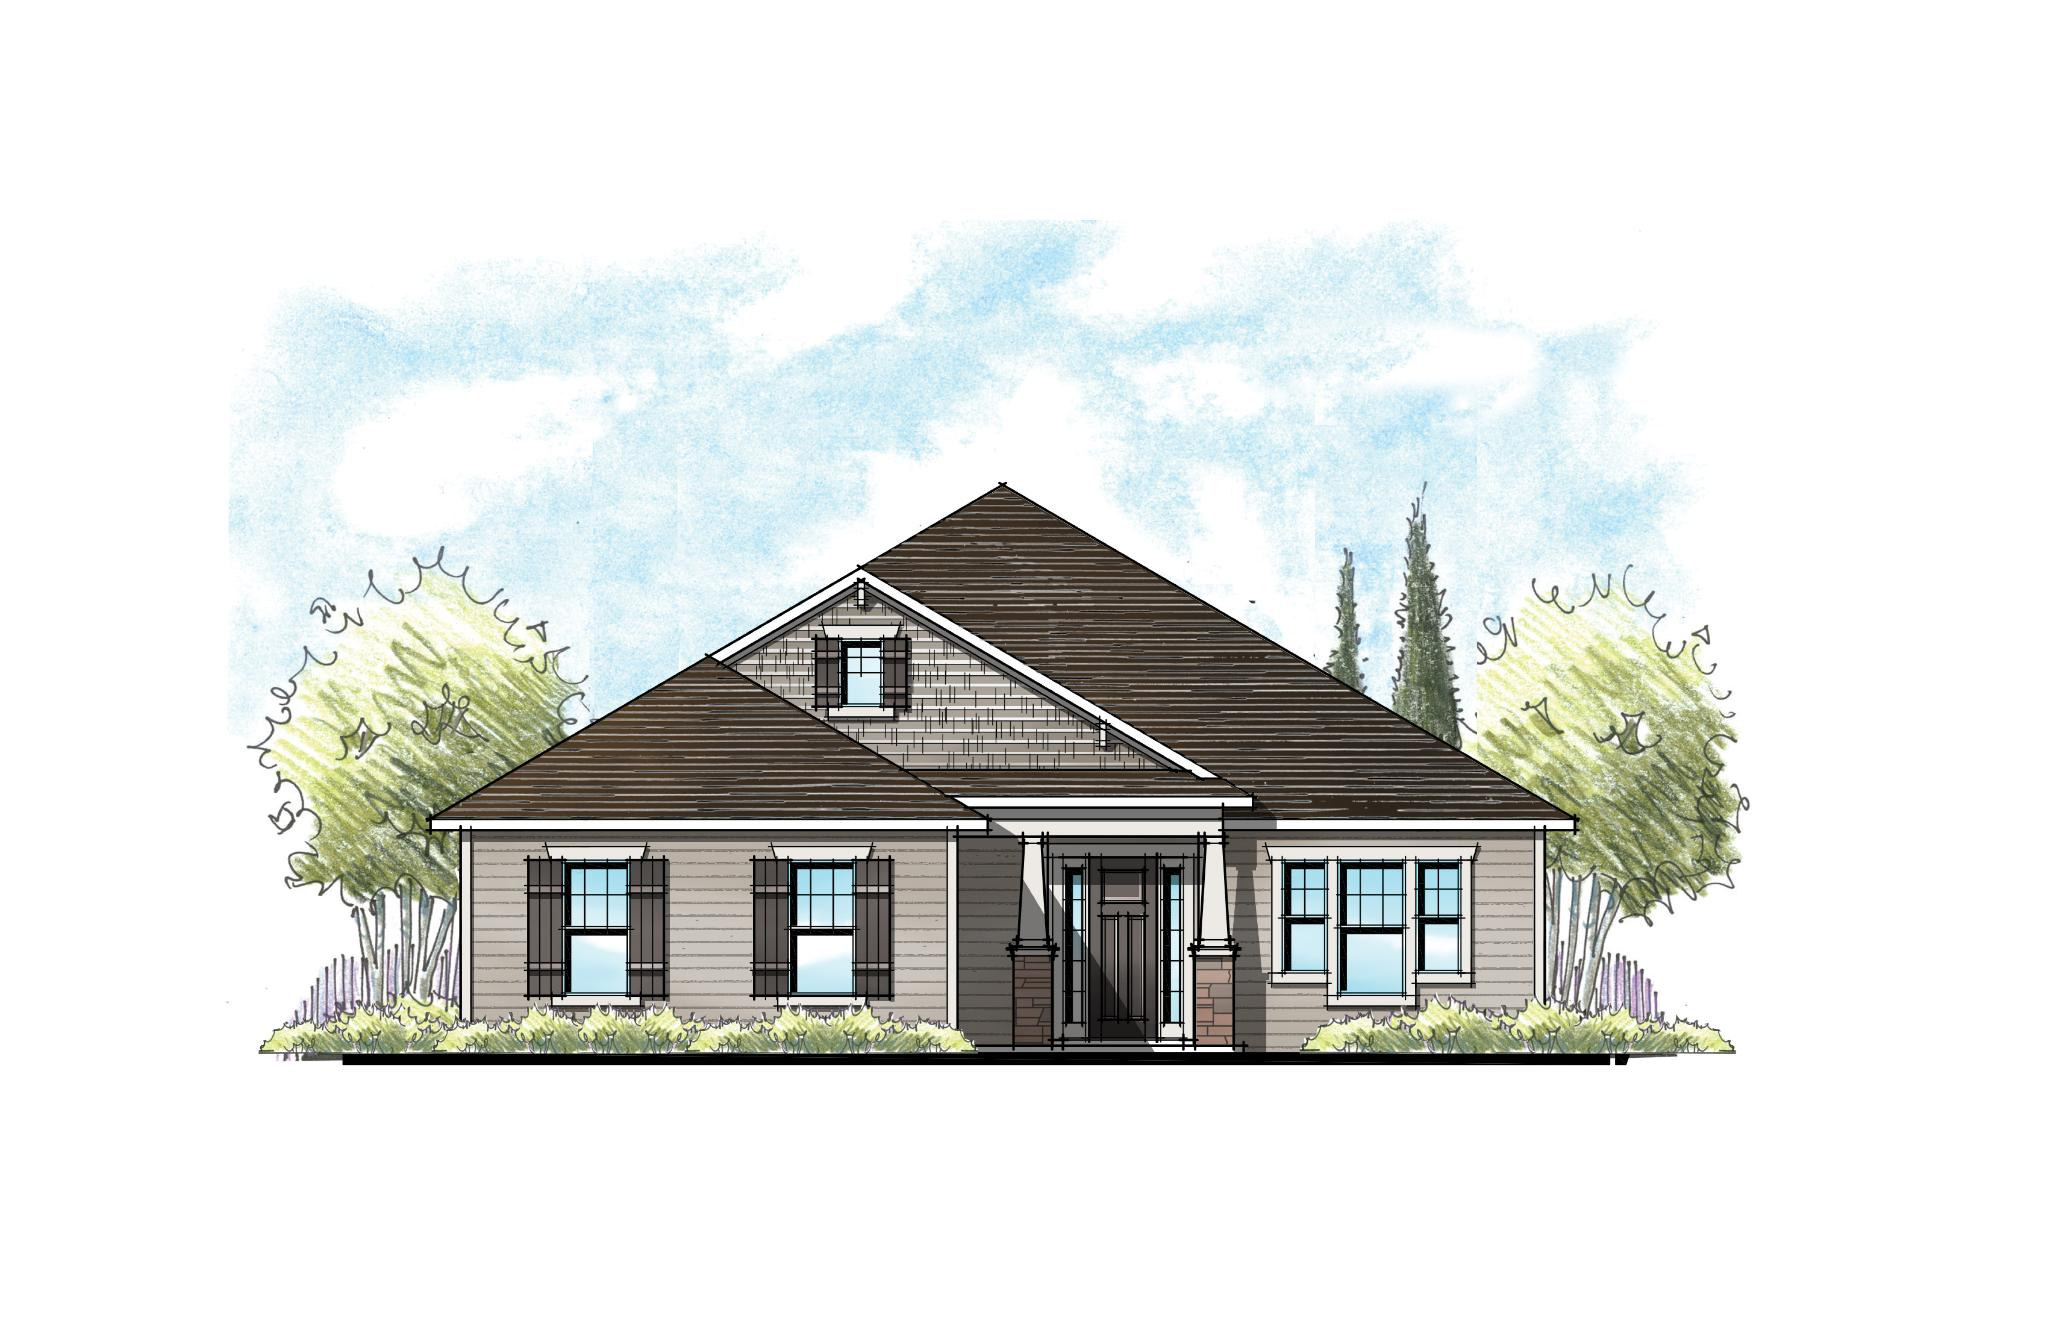 The Buckhorn at Crosswater Southern Craftsman Elevation 7